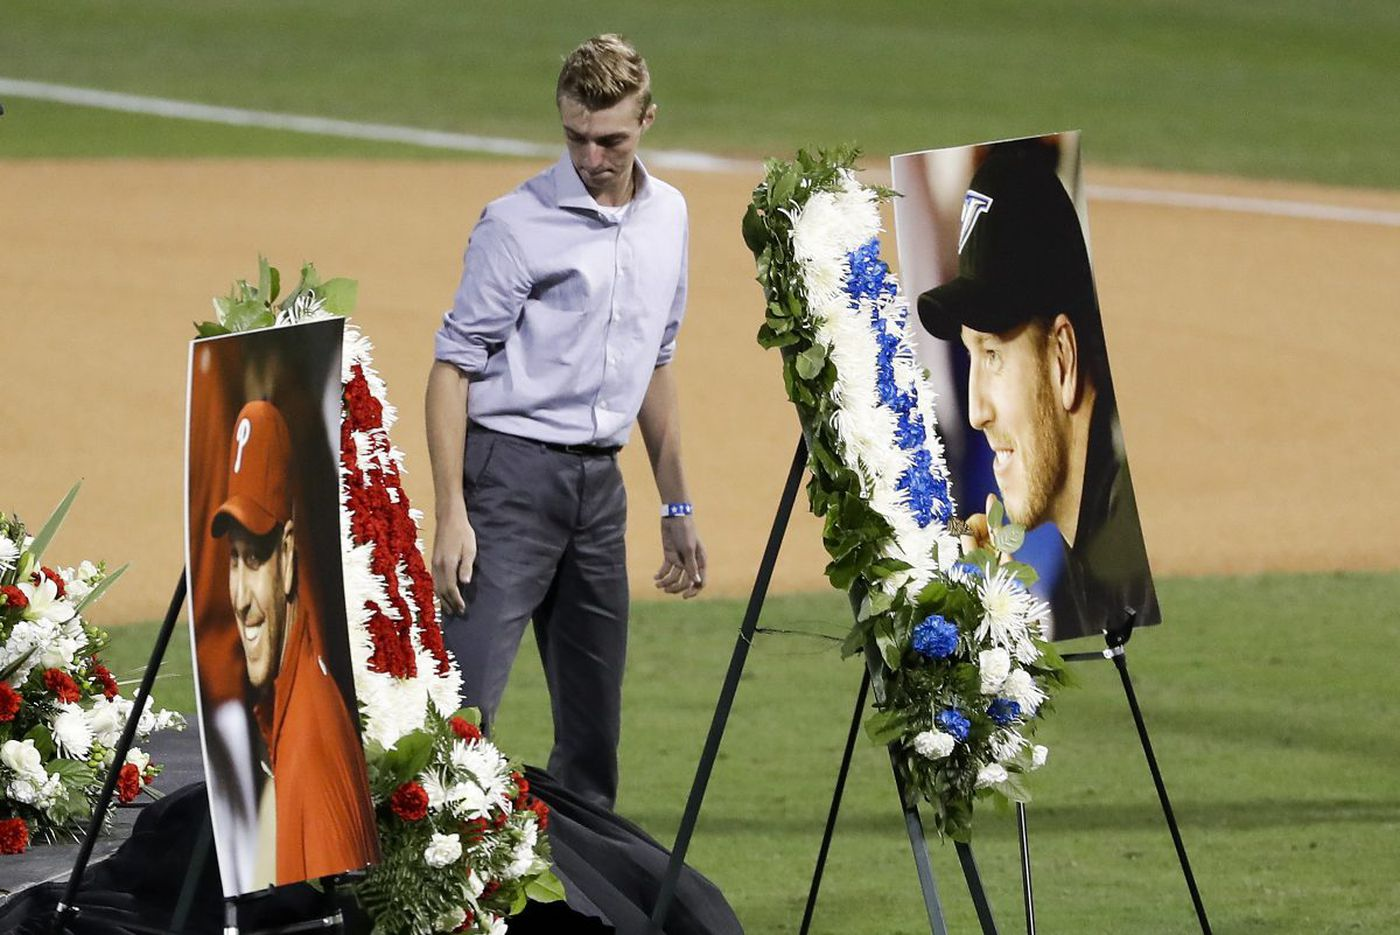 Roy Halladay remembered and celebrated in ballpark service